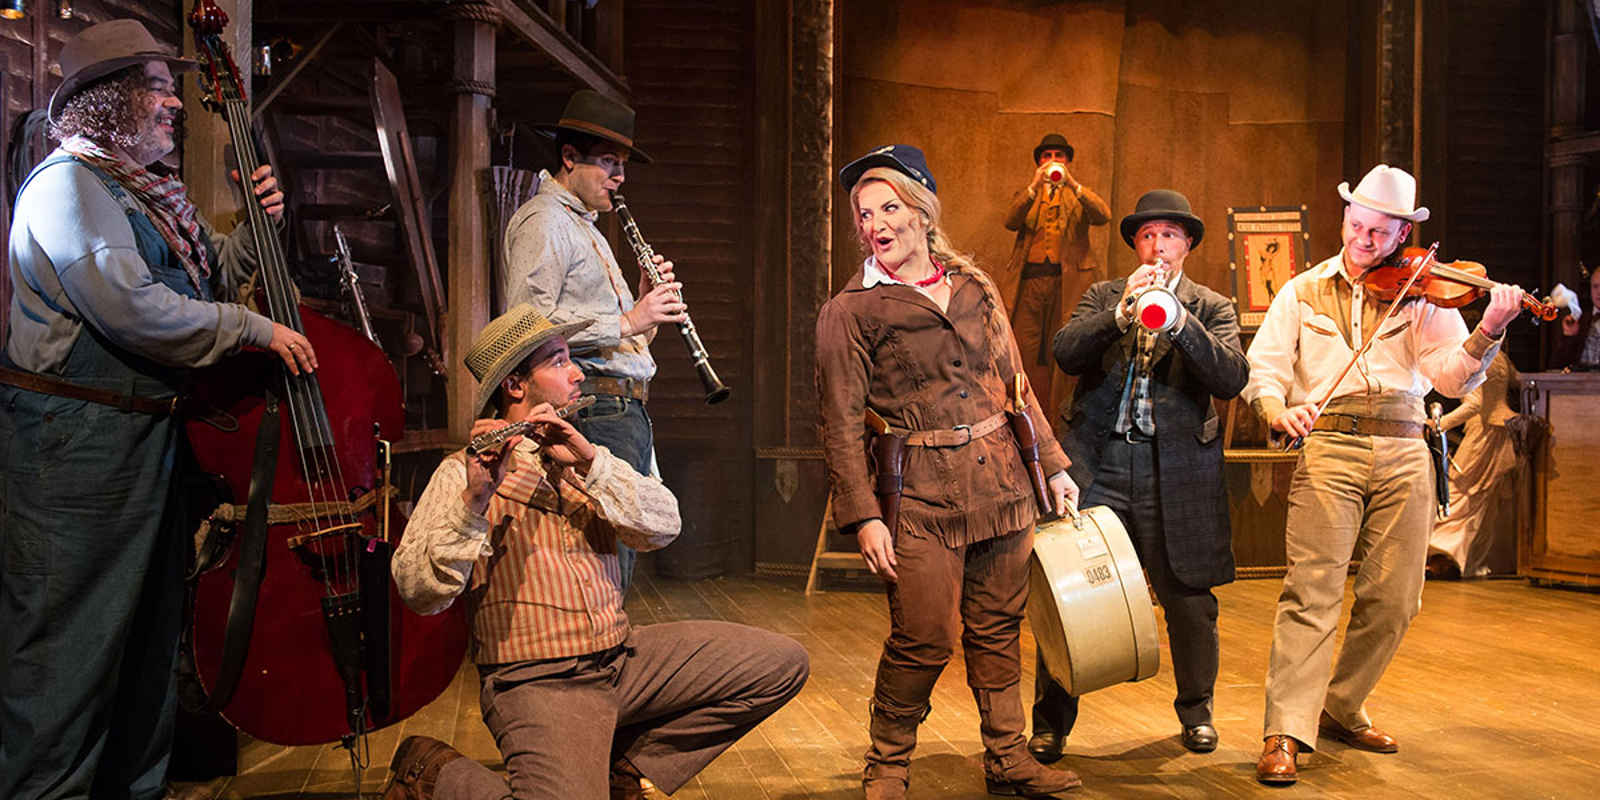 Cast of Calamity Jane Musical on stage